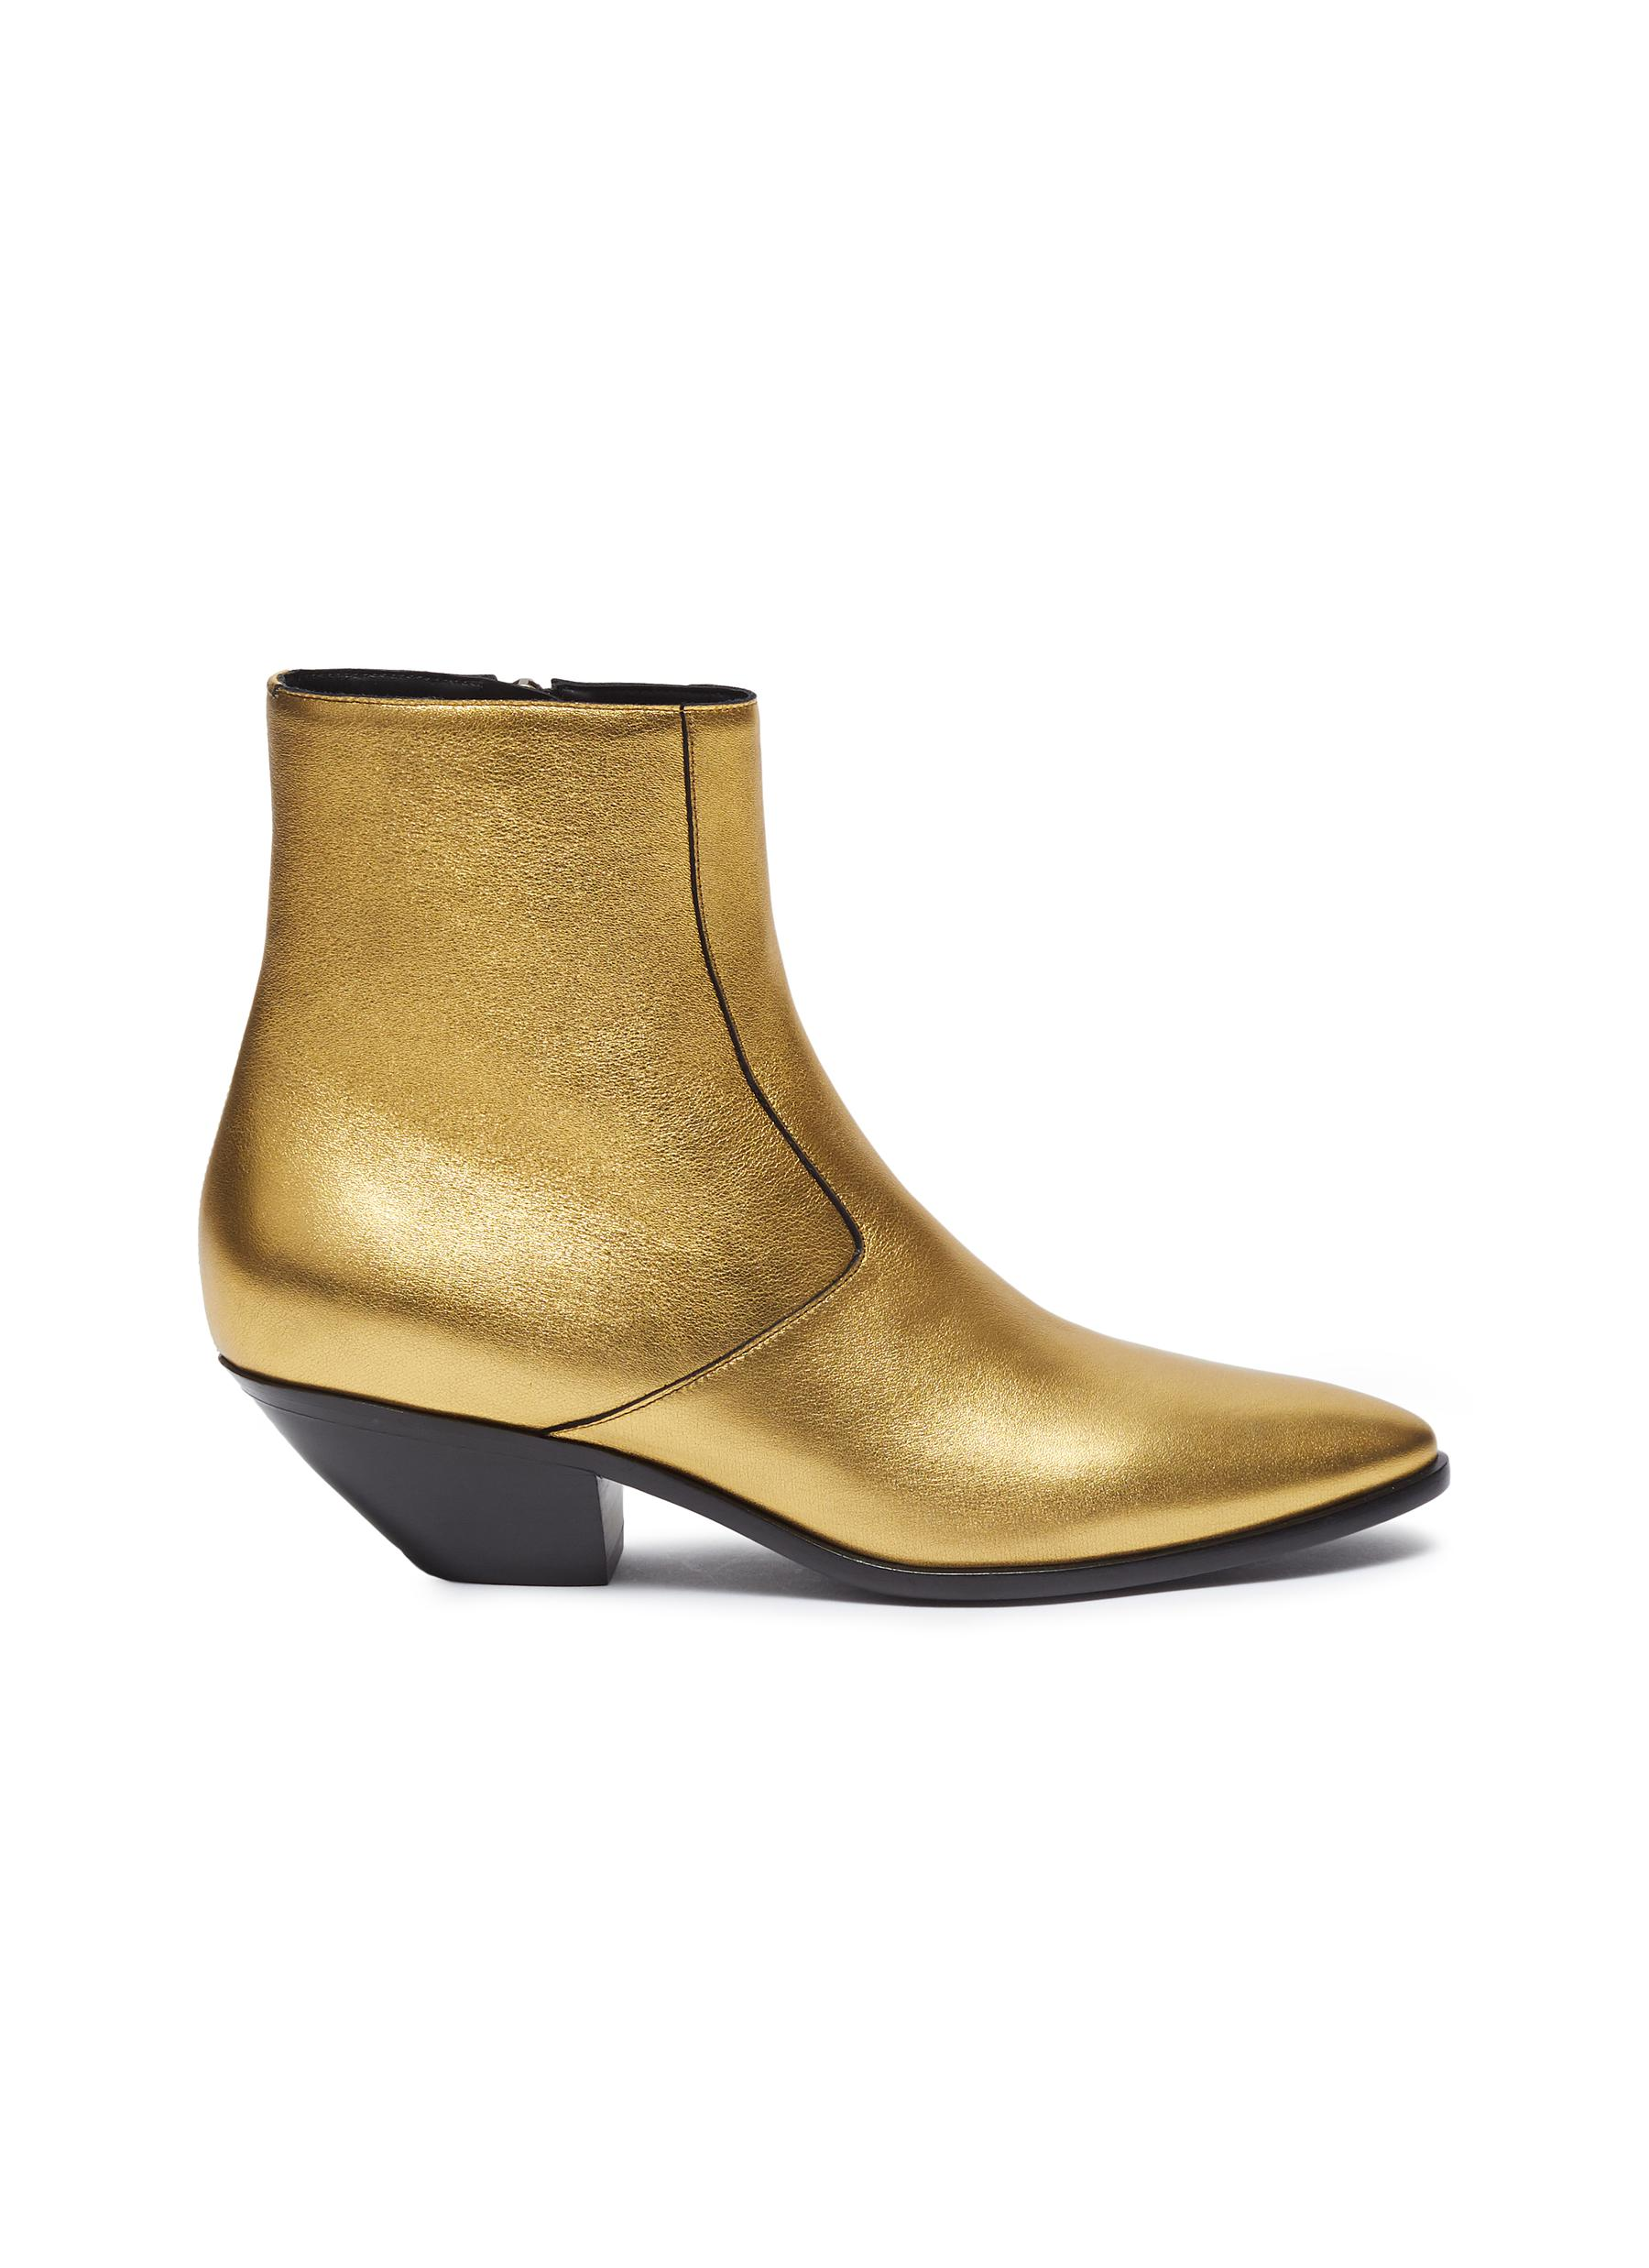 West slanted heel metallic leather ankle boots by Saint Laurent